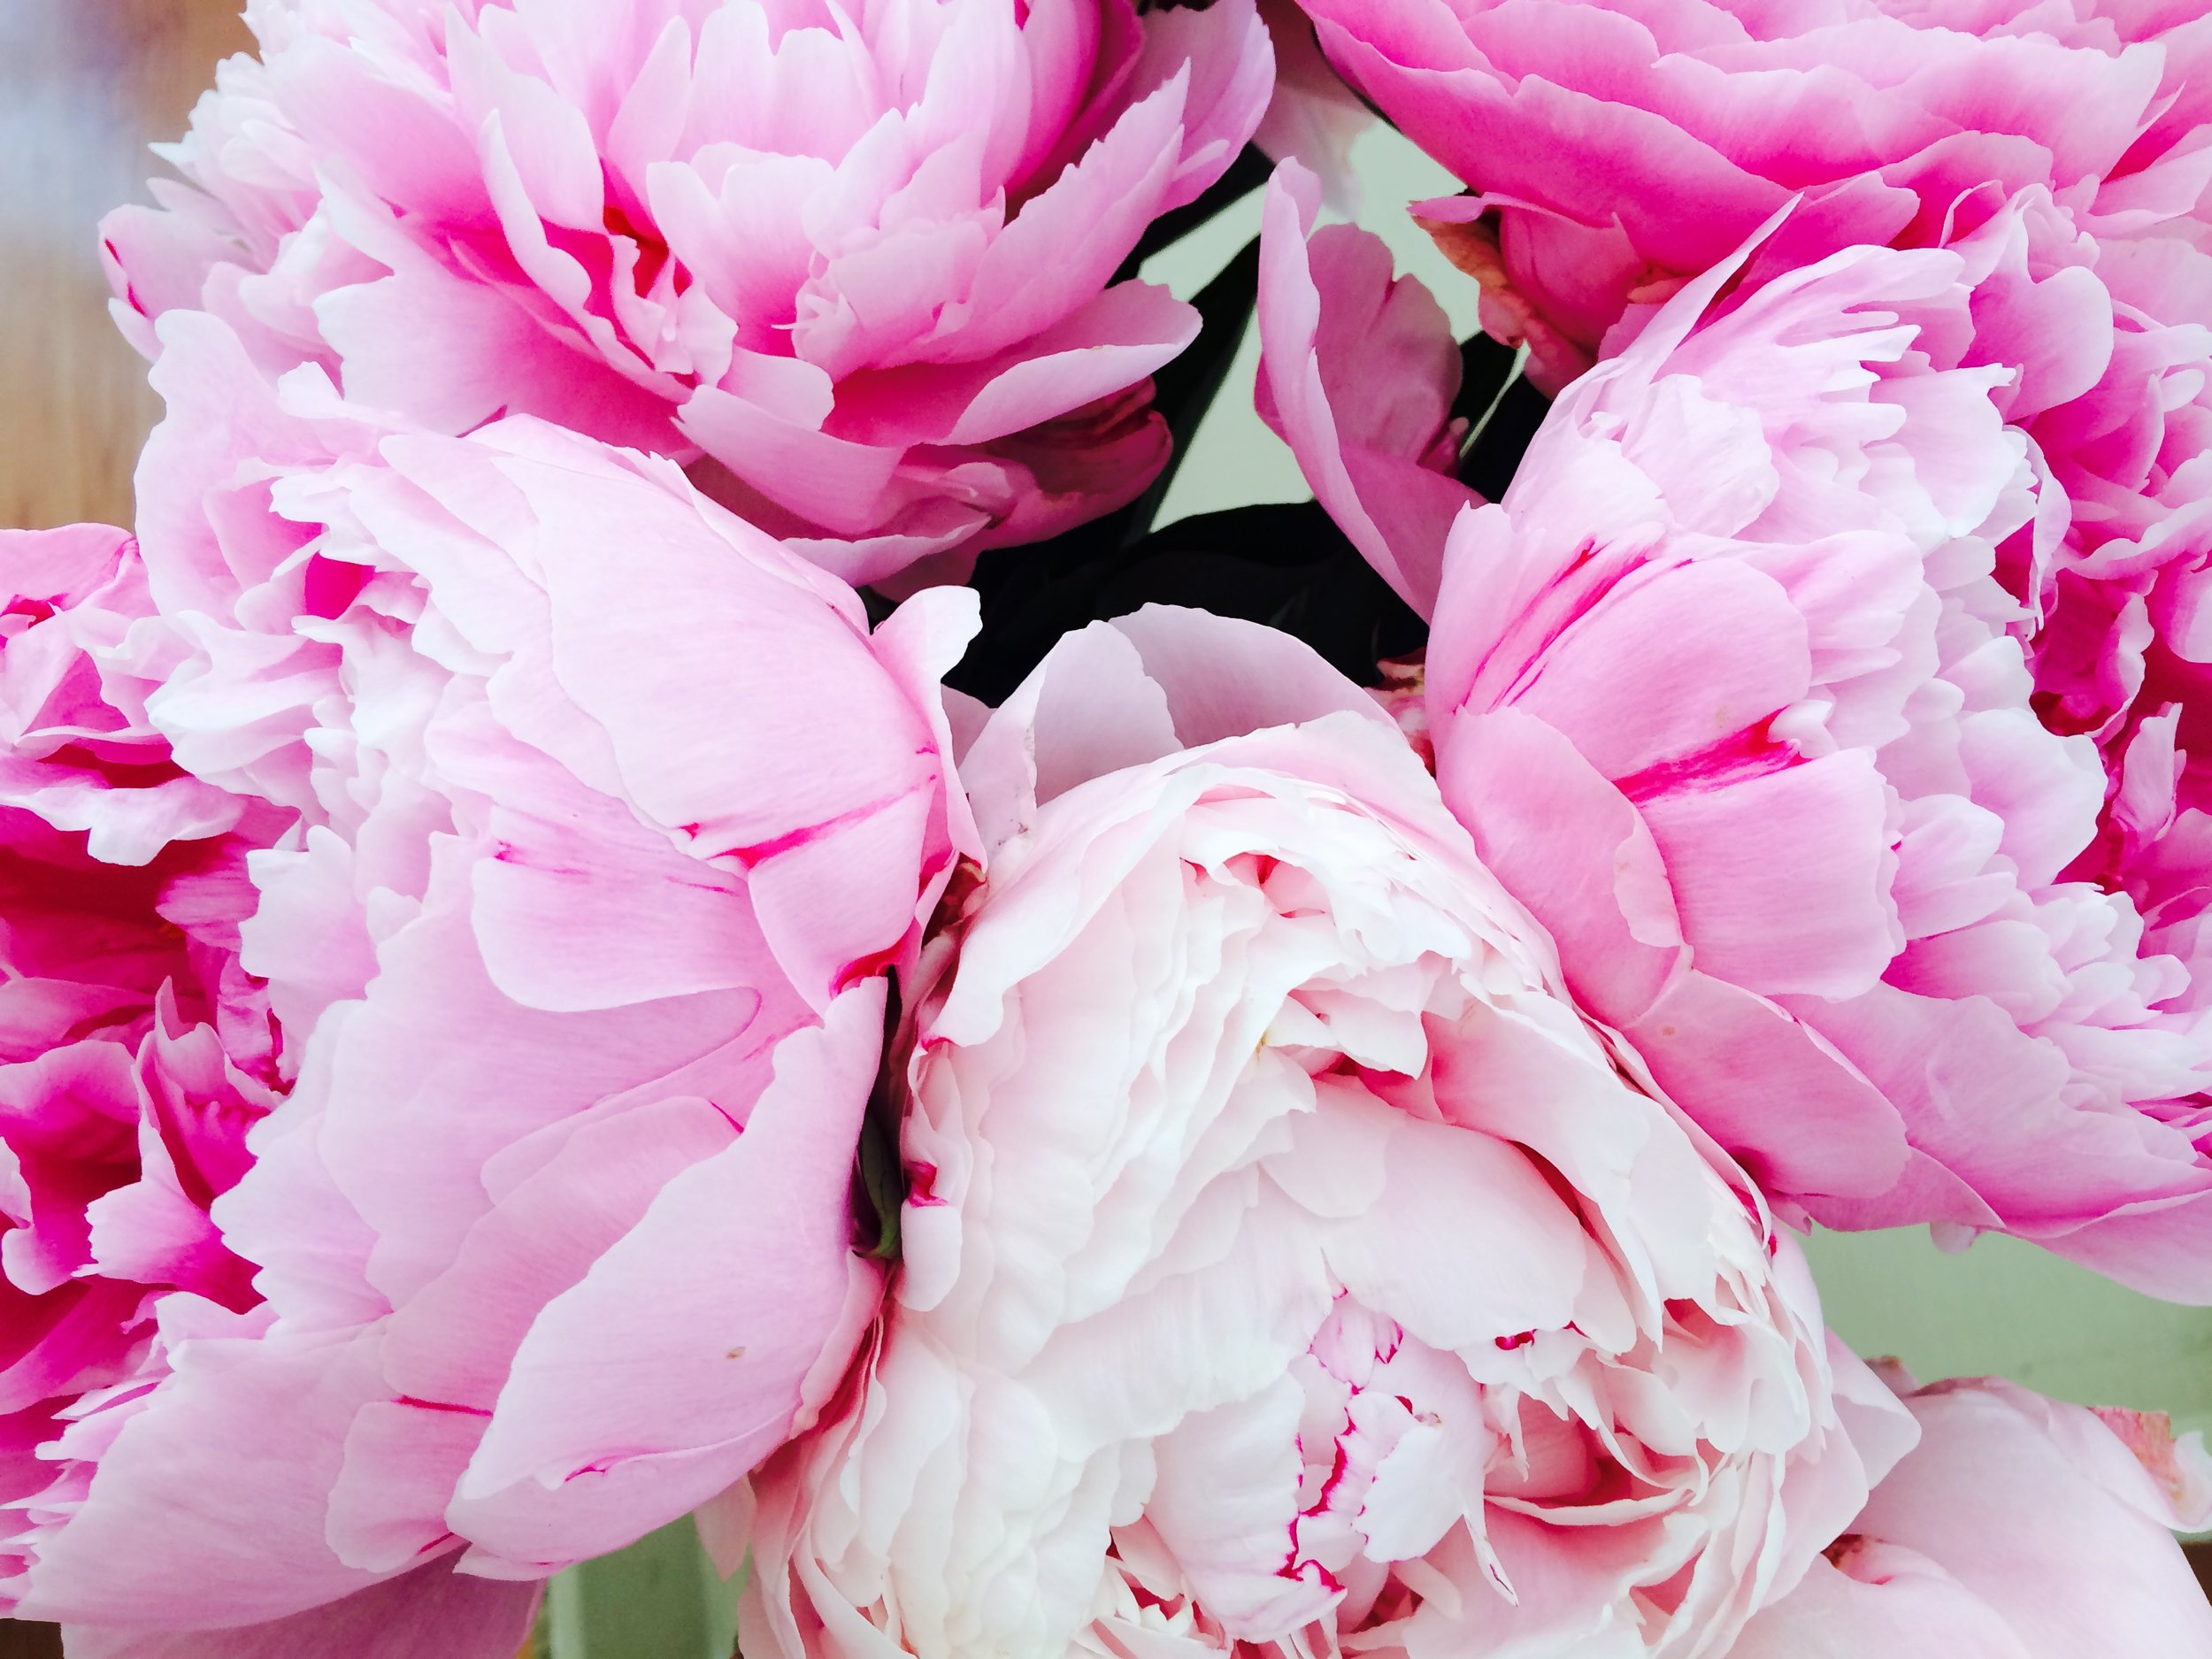 Peonies found at a Parisian market